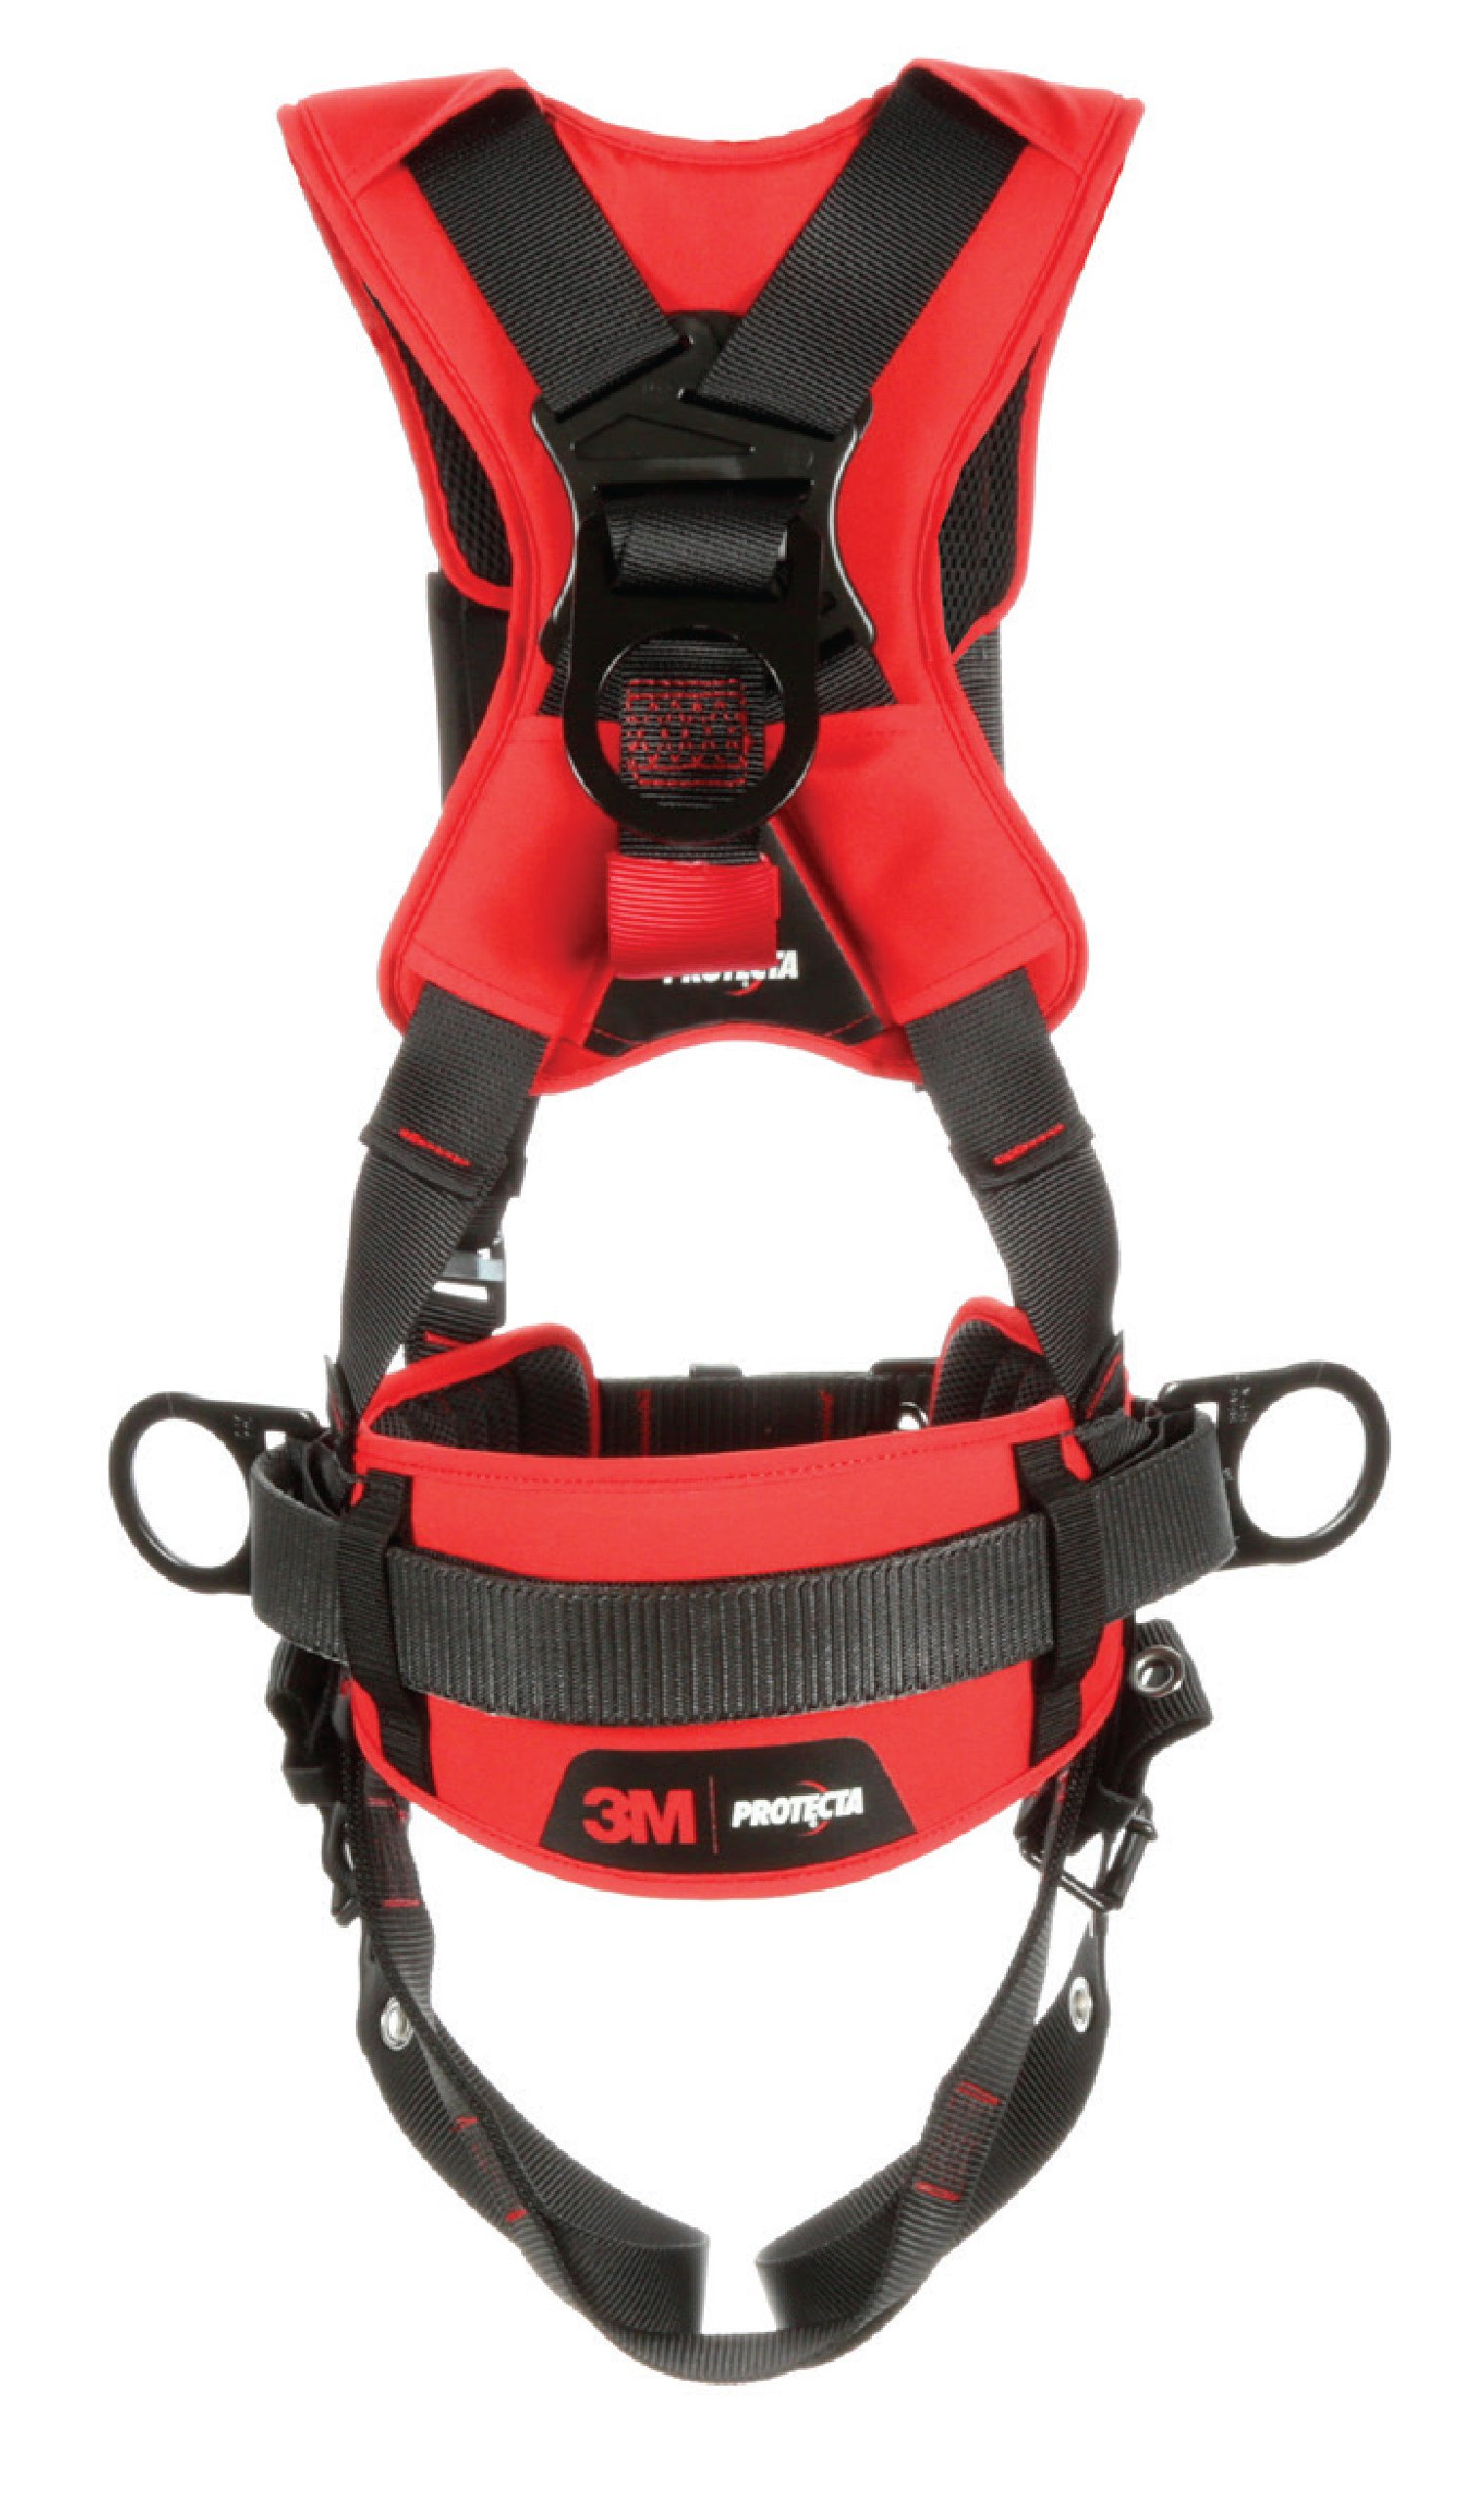 Protecta Black Comfort Construction Style Positioning Harness (Size:M/L) by 3M VASP Fall Protection (Image #4)